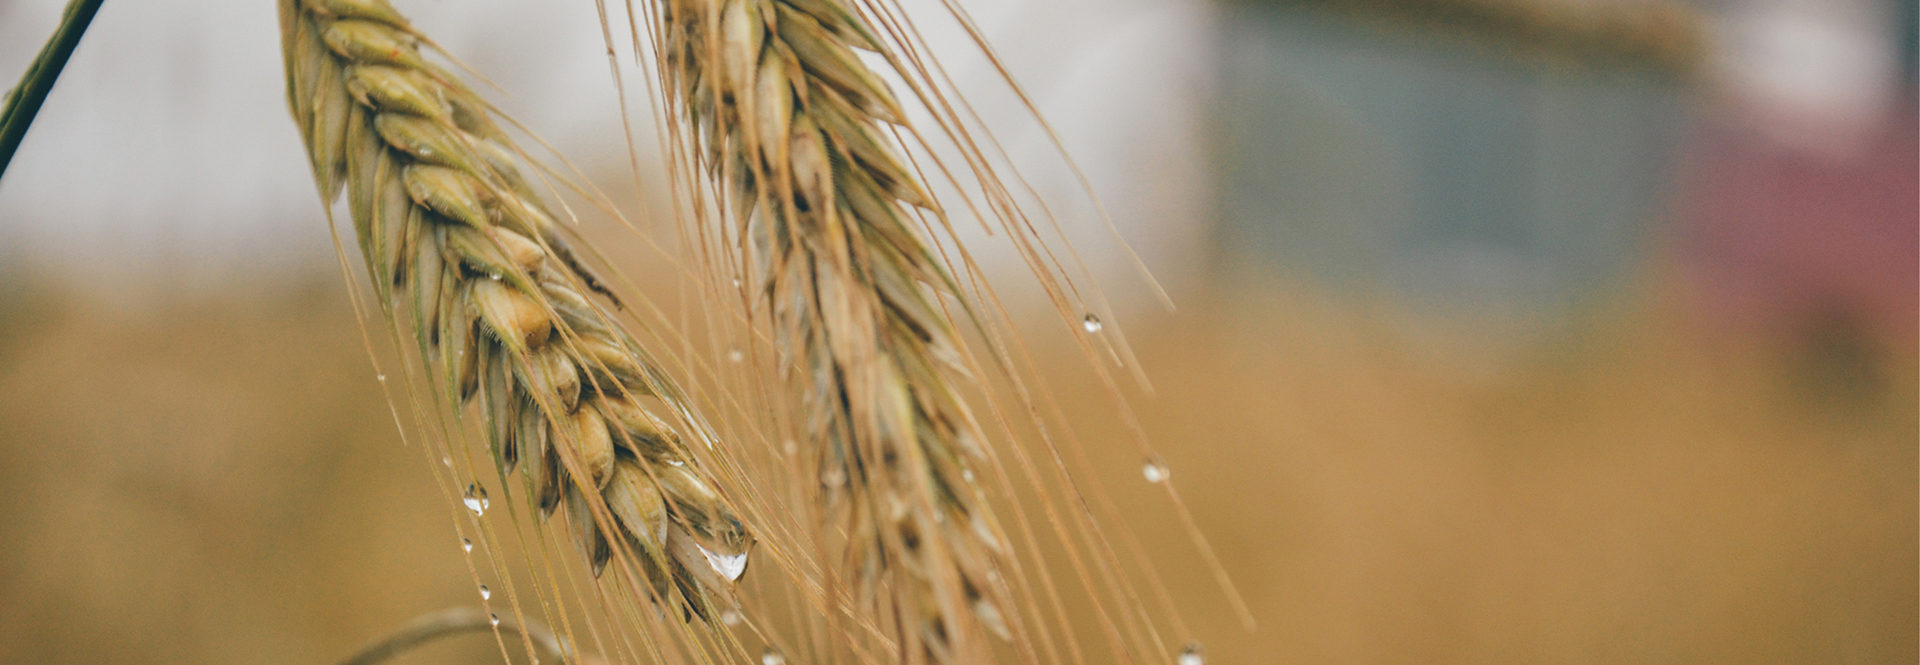 Two pieces of straw with rain drops